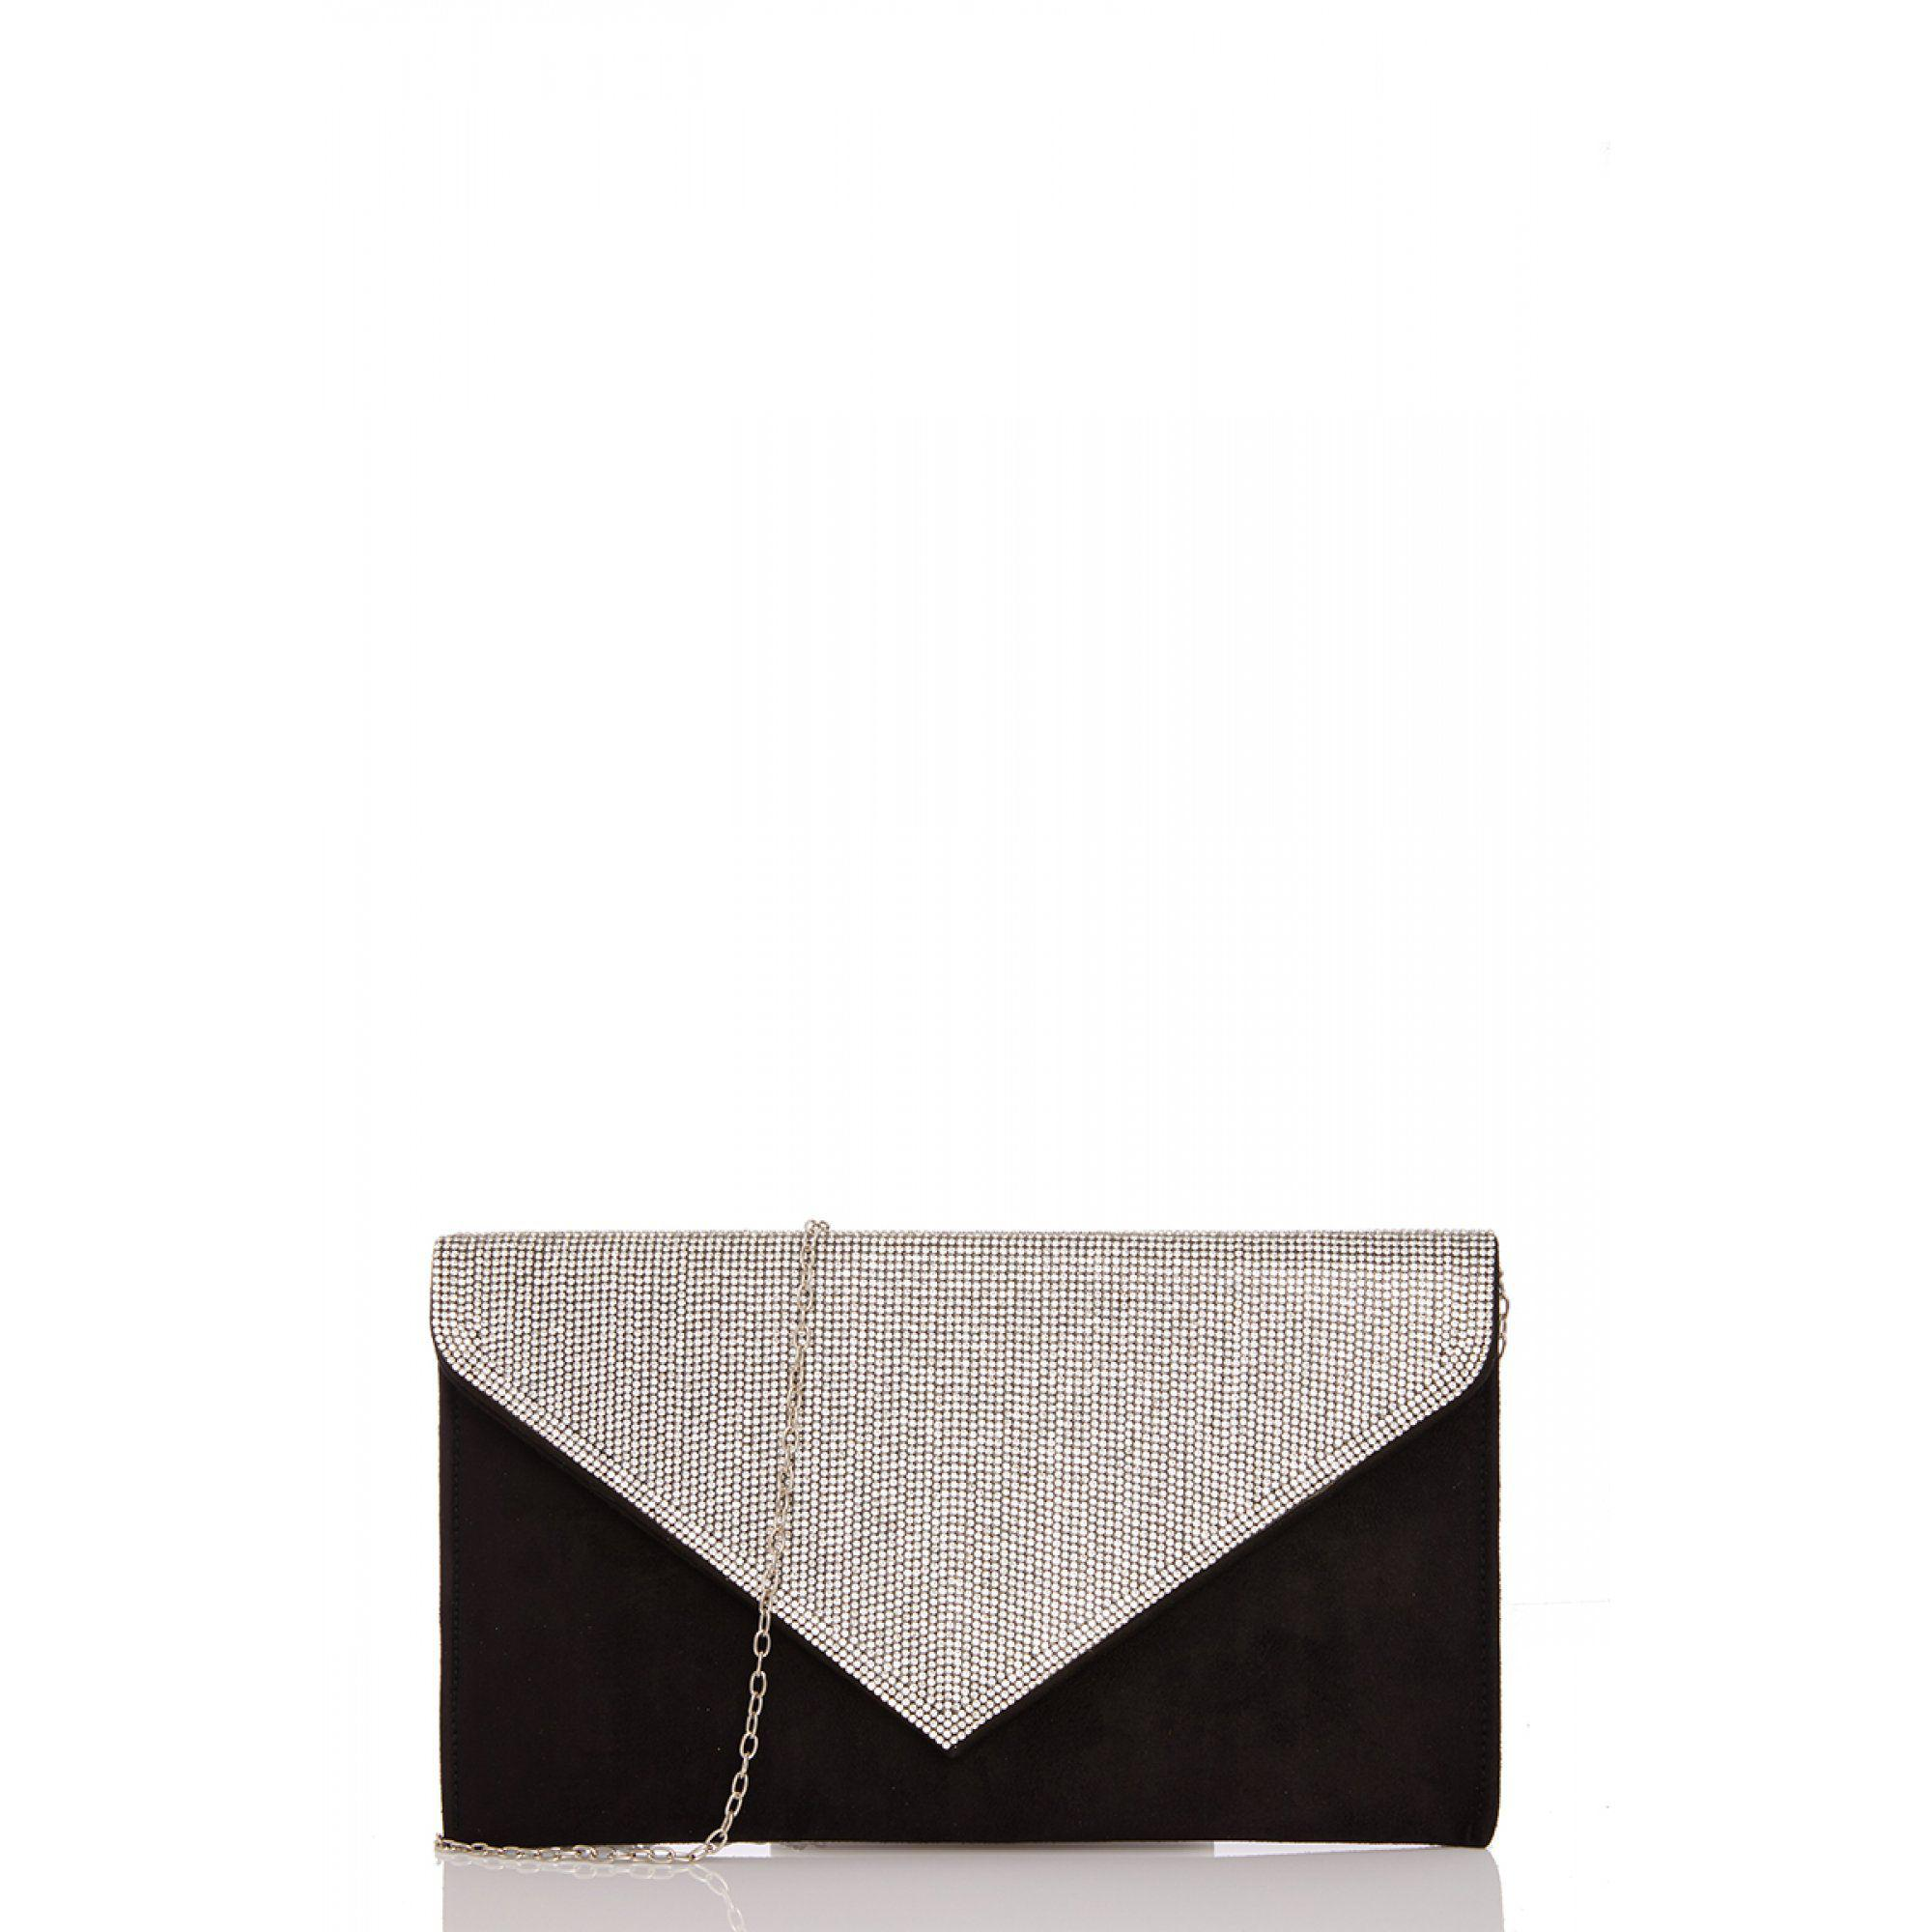 53a9f3b8841a8 Quiz - Black Faux Suede Diamante Envelope Bag - Lyst. View fullscreen